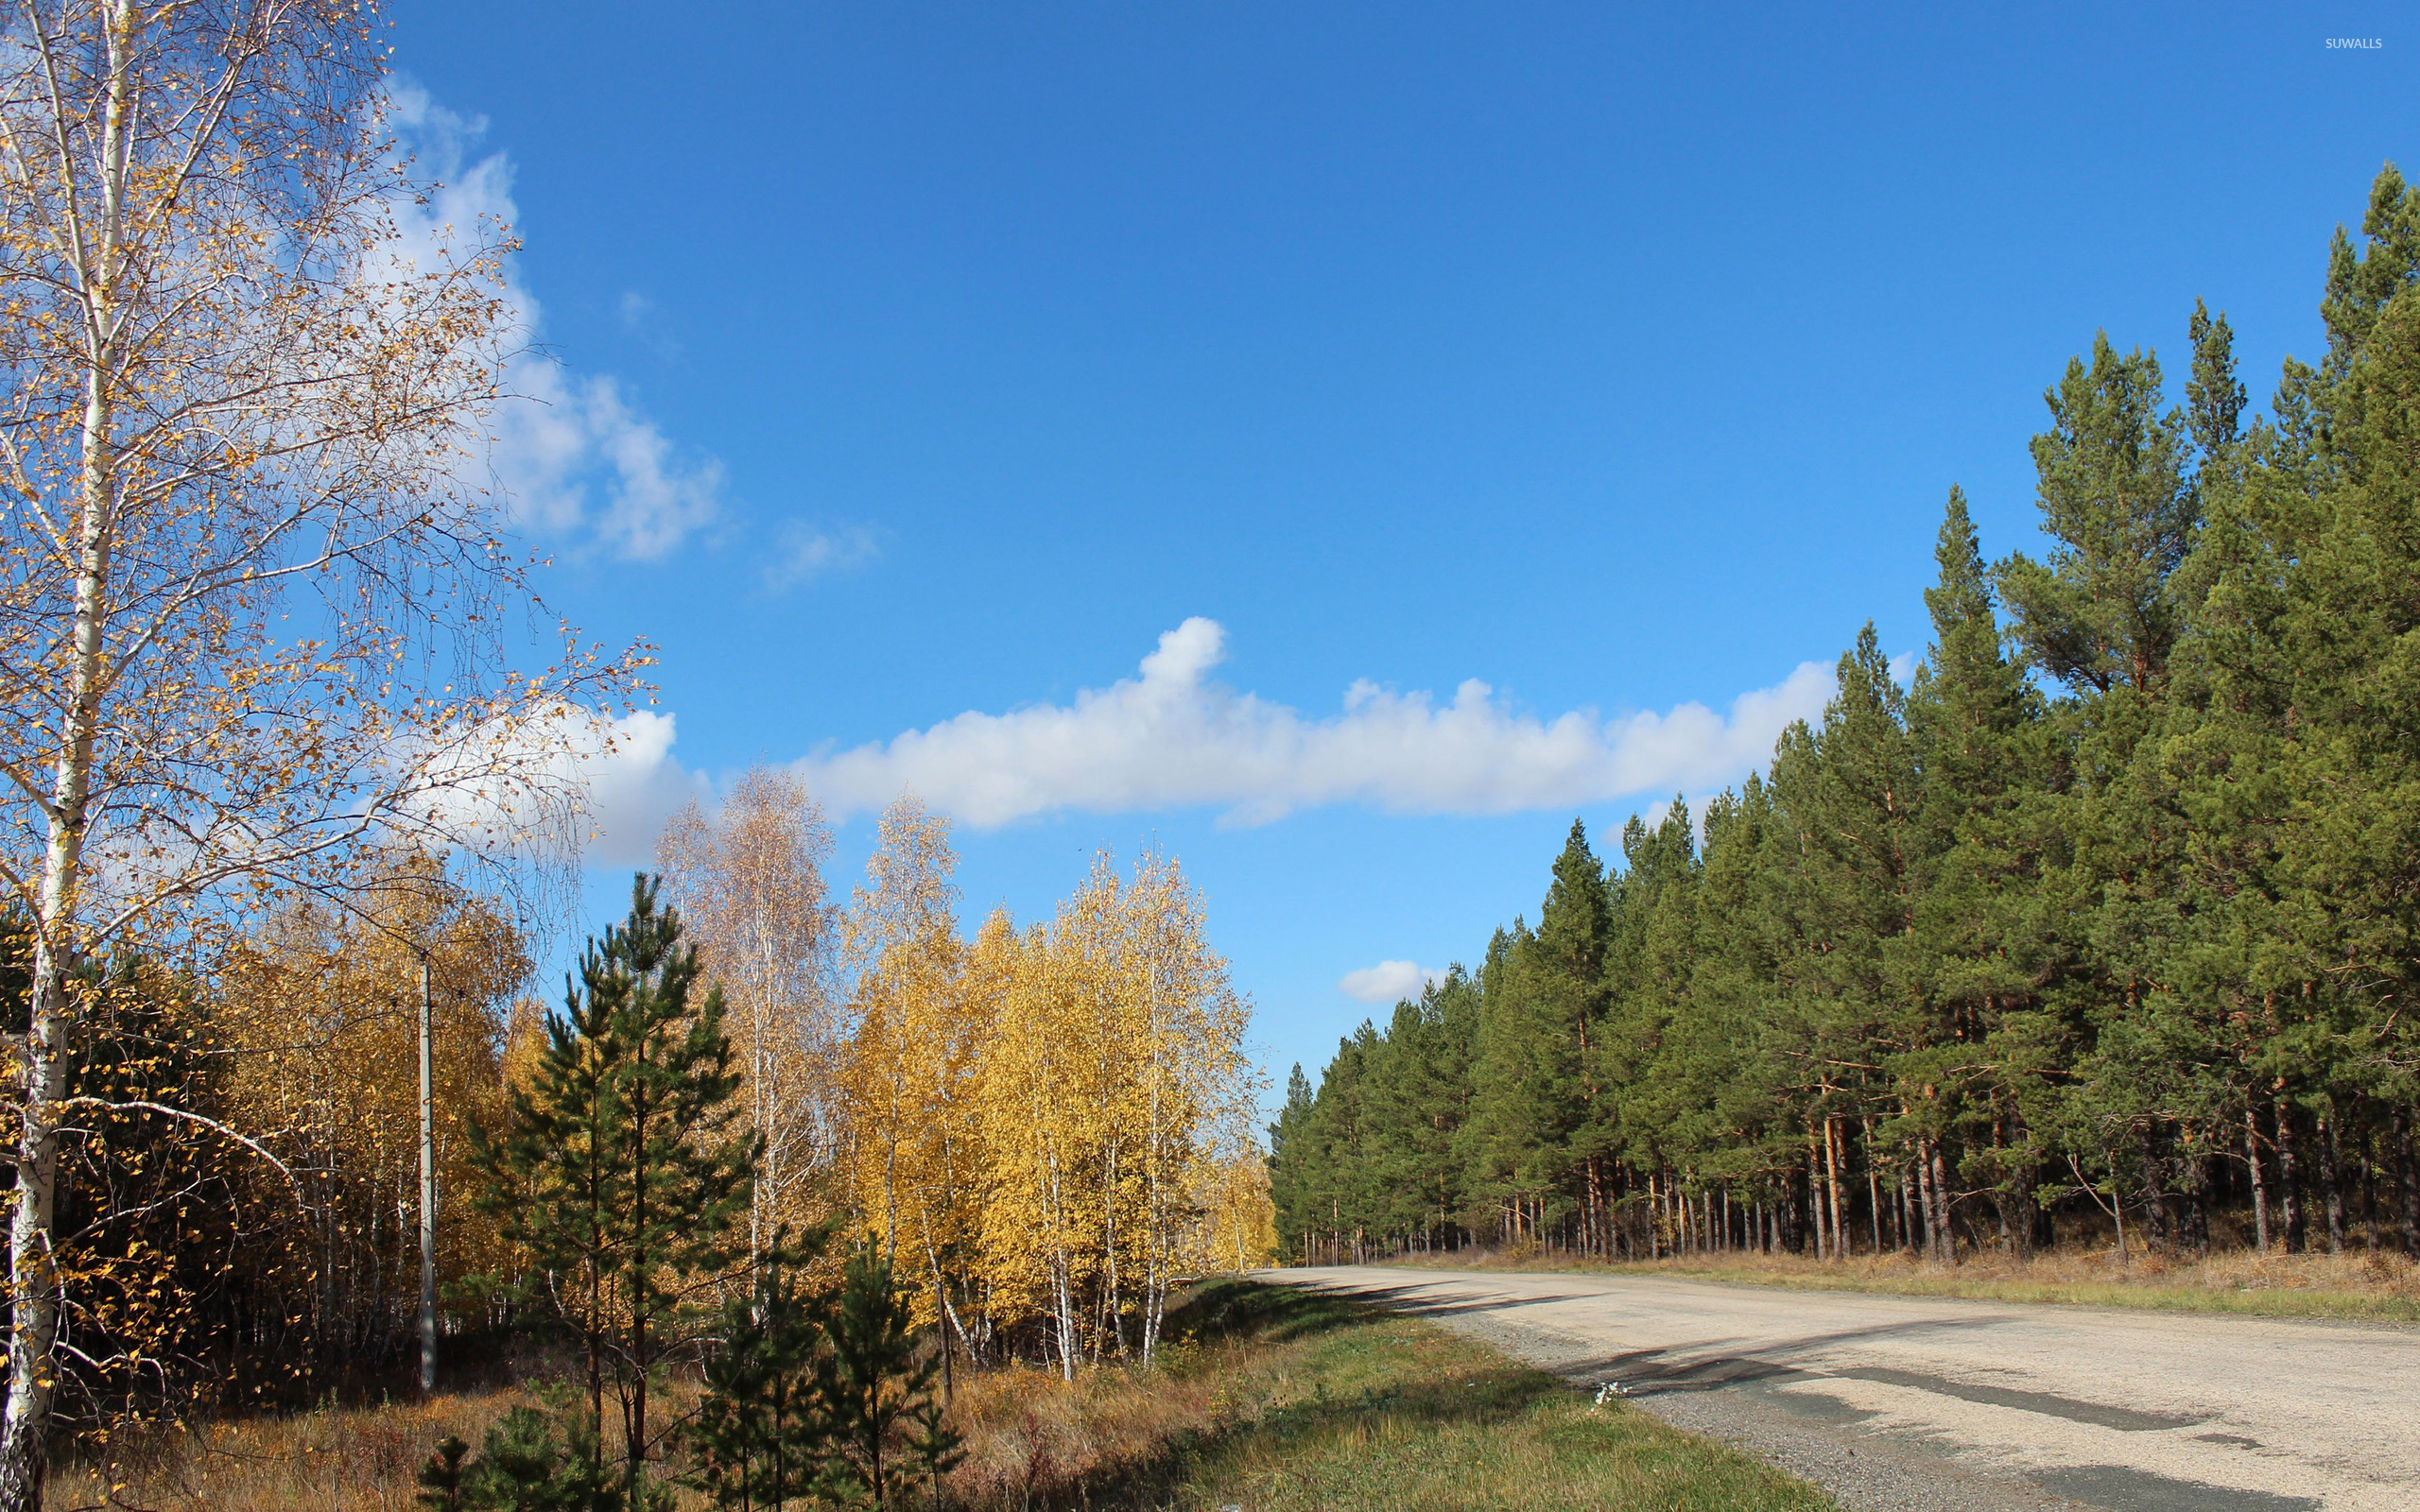 Fall Birch Tree Wallpaper Autumn Birch Trees On The Road Side Wallpaper Nature